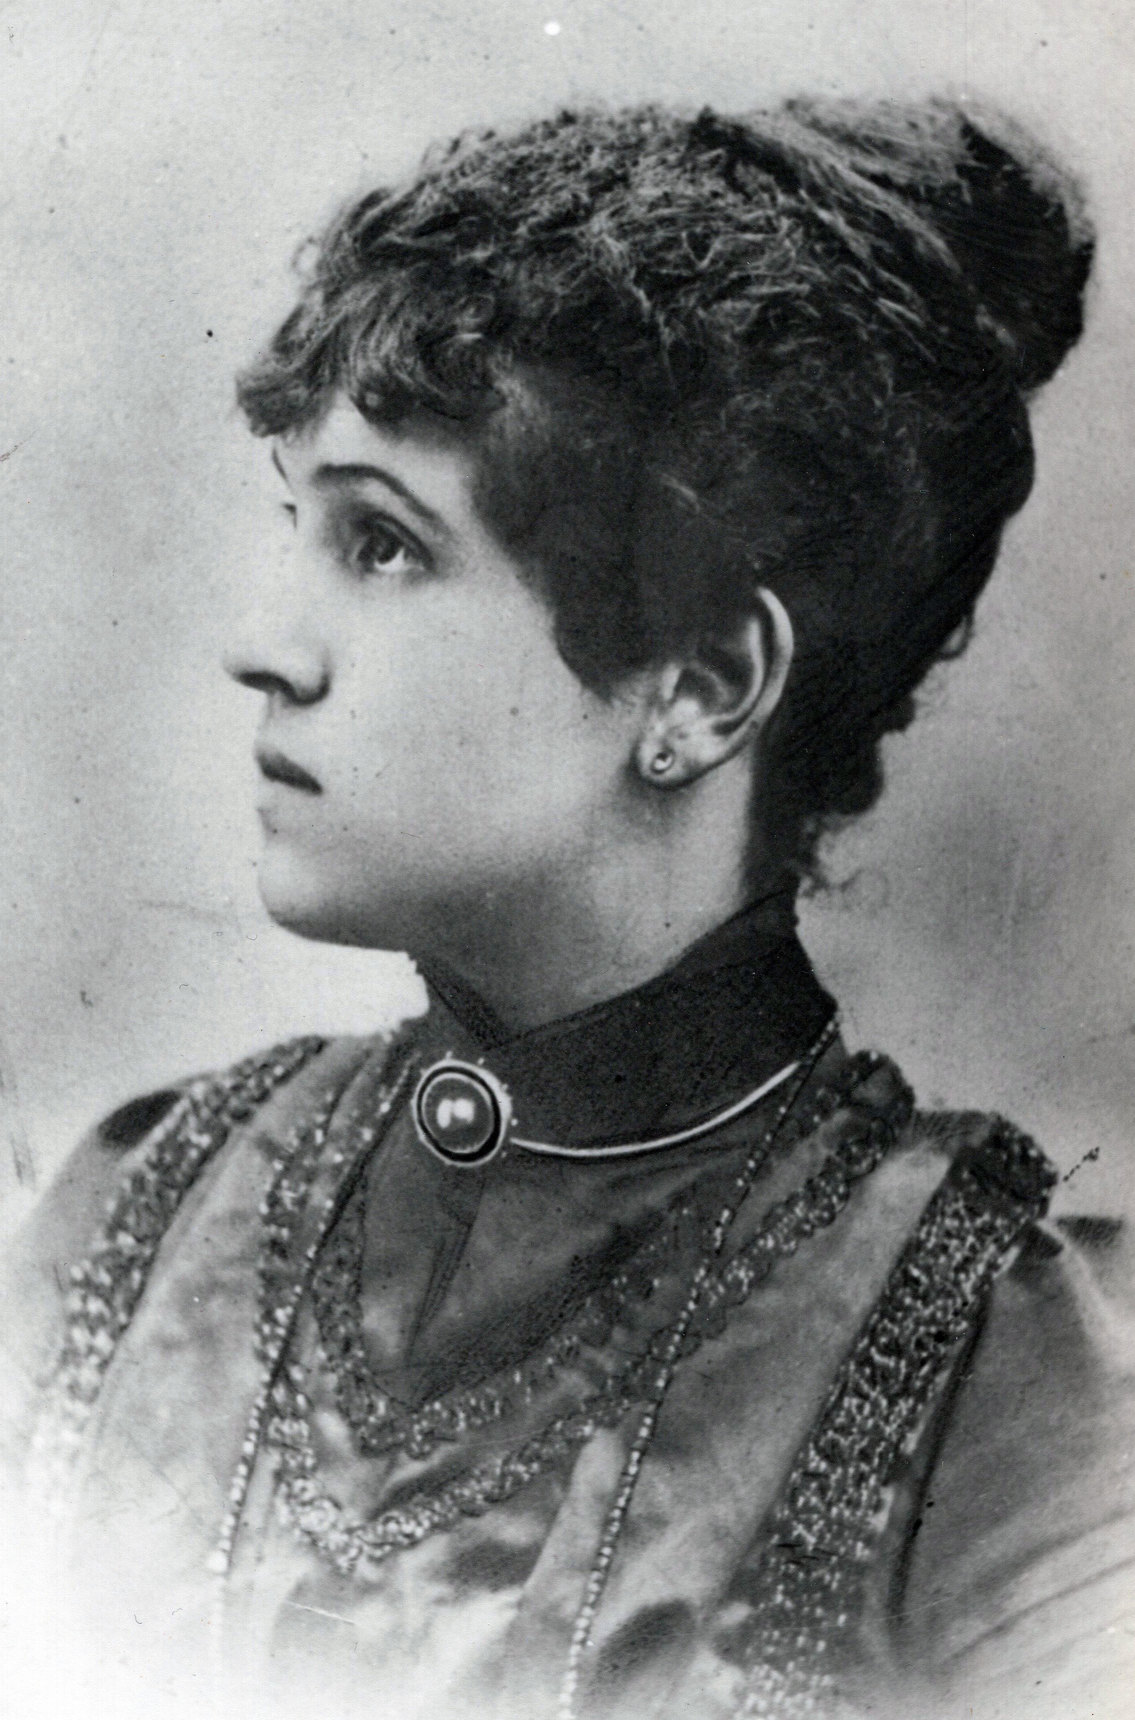 Studio Portrait Young Woman c.1900